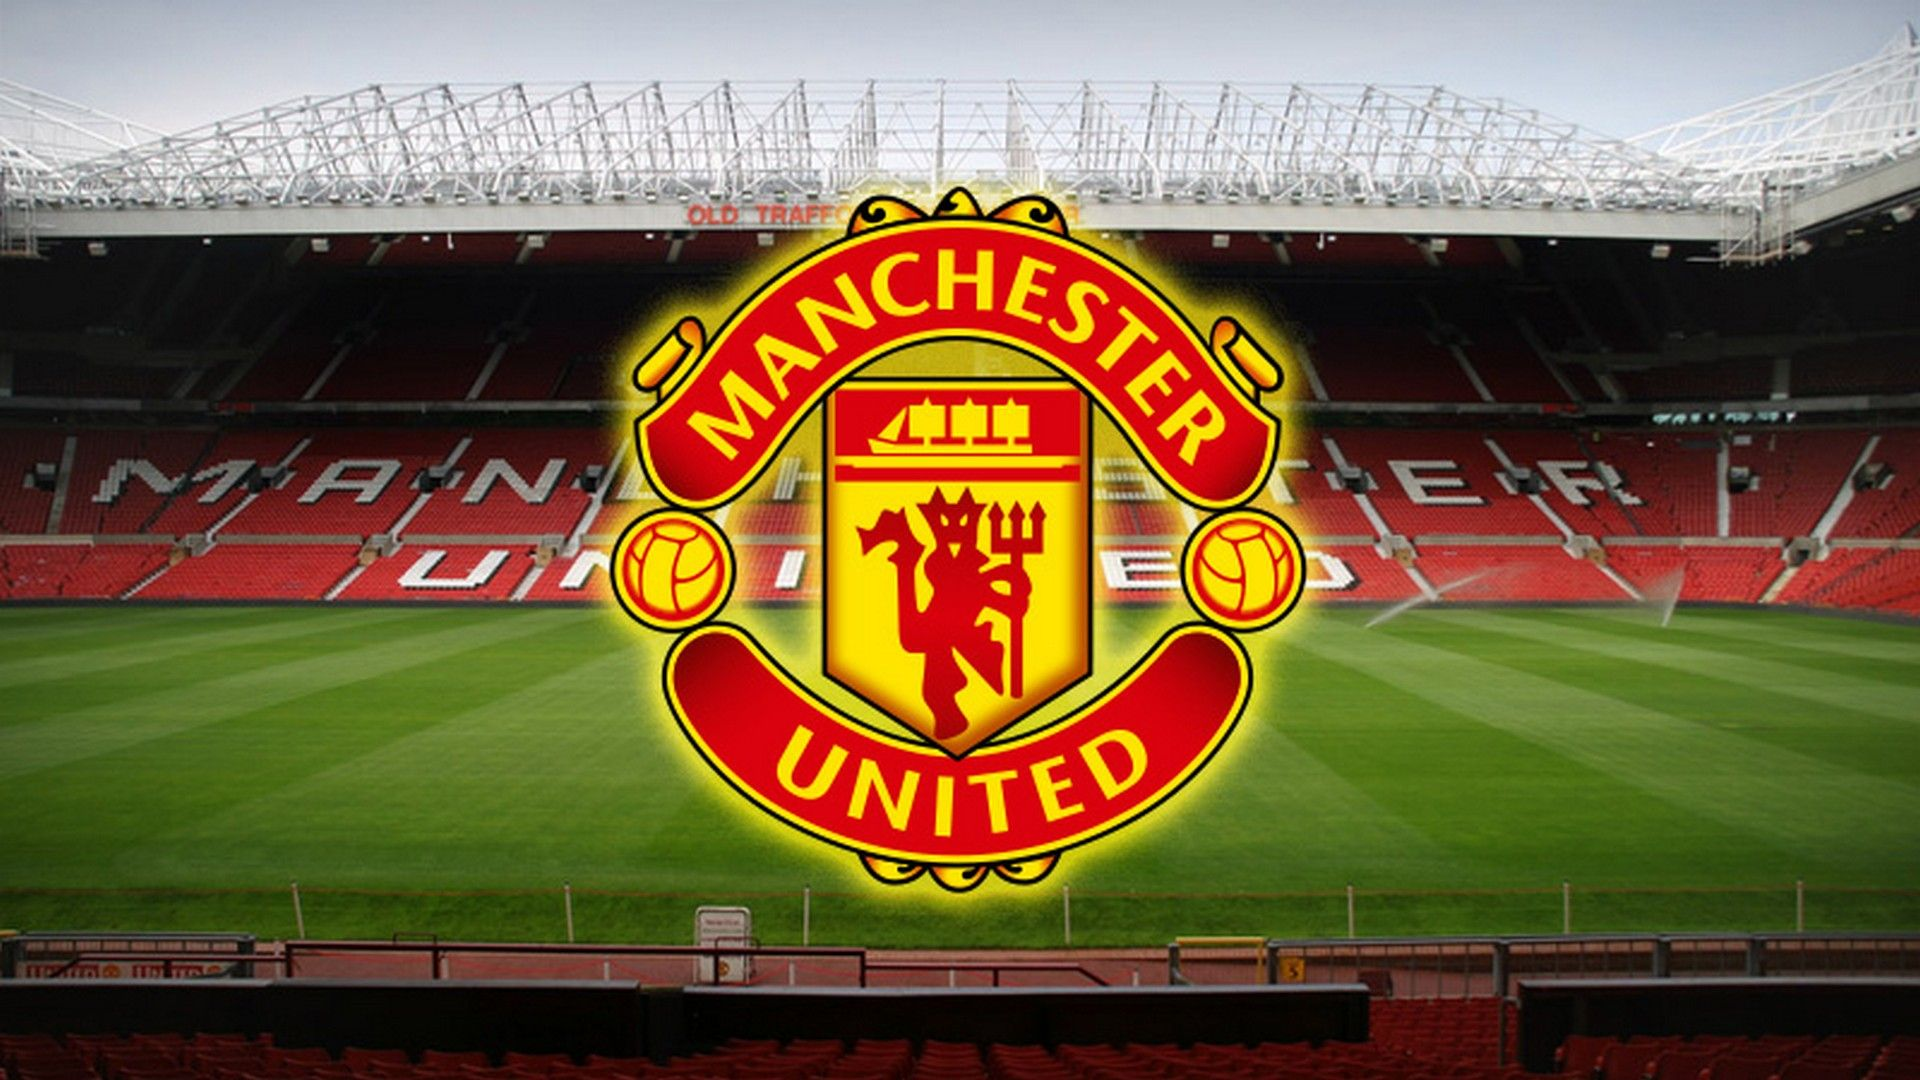 Windows Wallpaper Manchester United